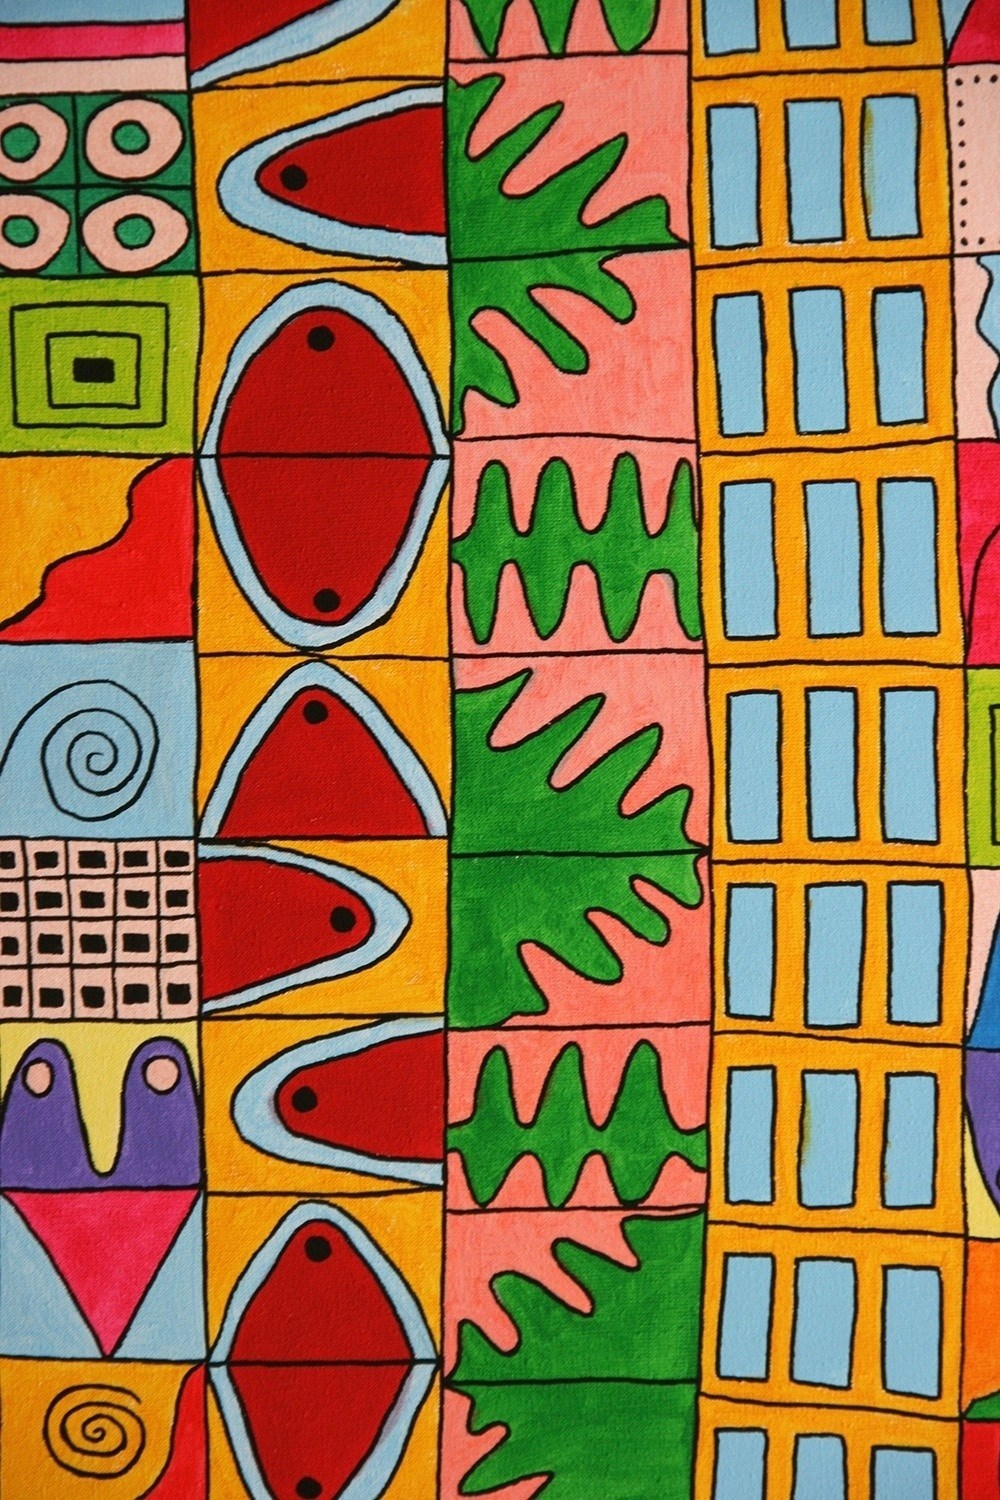 Buildings and stories 3, original Abstract Acrylic Painting by Inês Peres